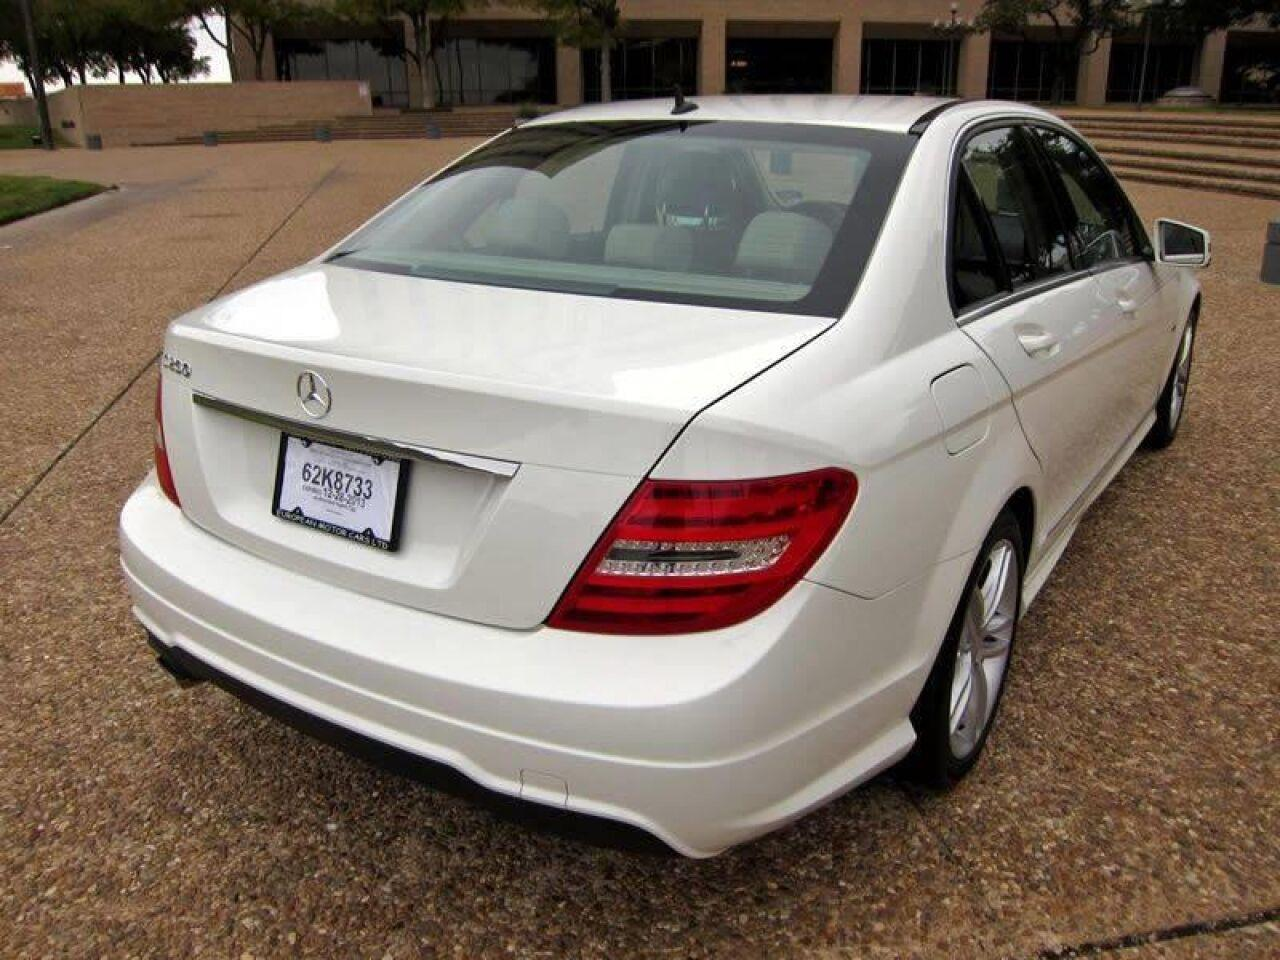 2013 Mercedes-Benz C-Class (CC-1251619) for sale in Fort Worth, Texas